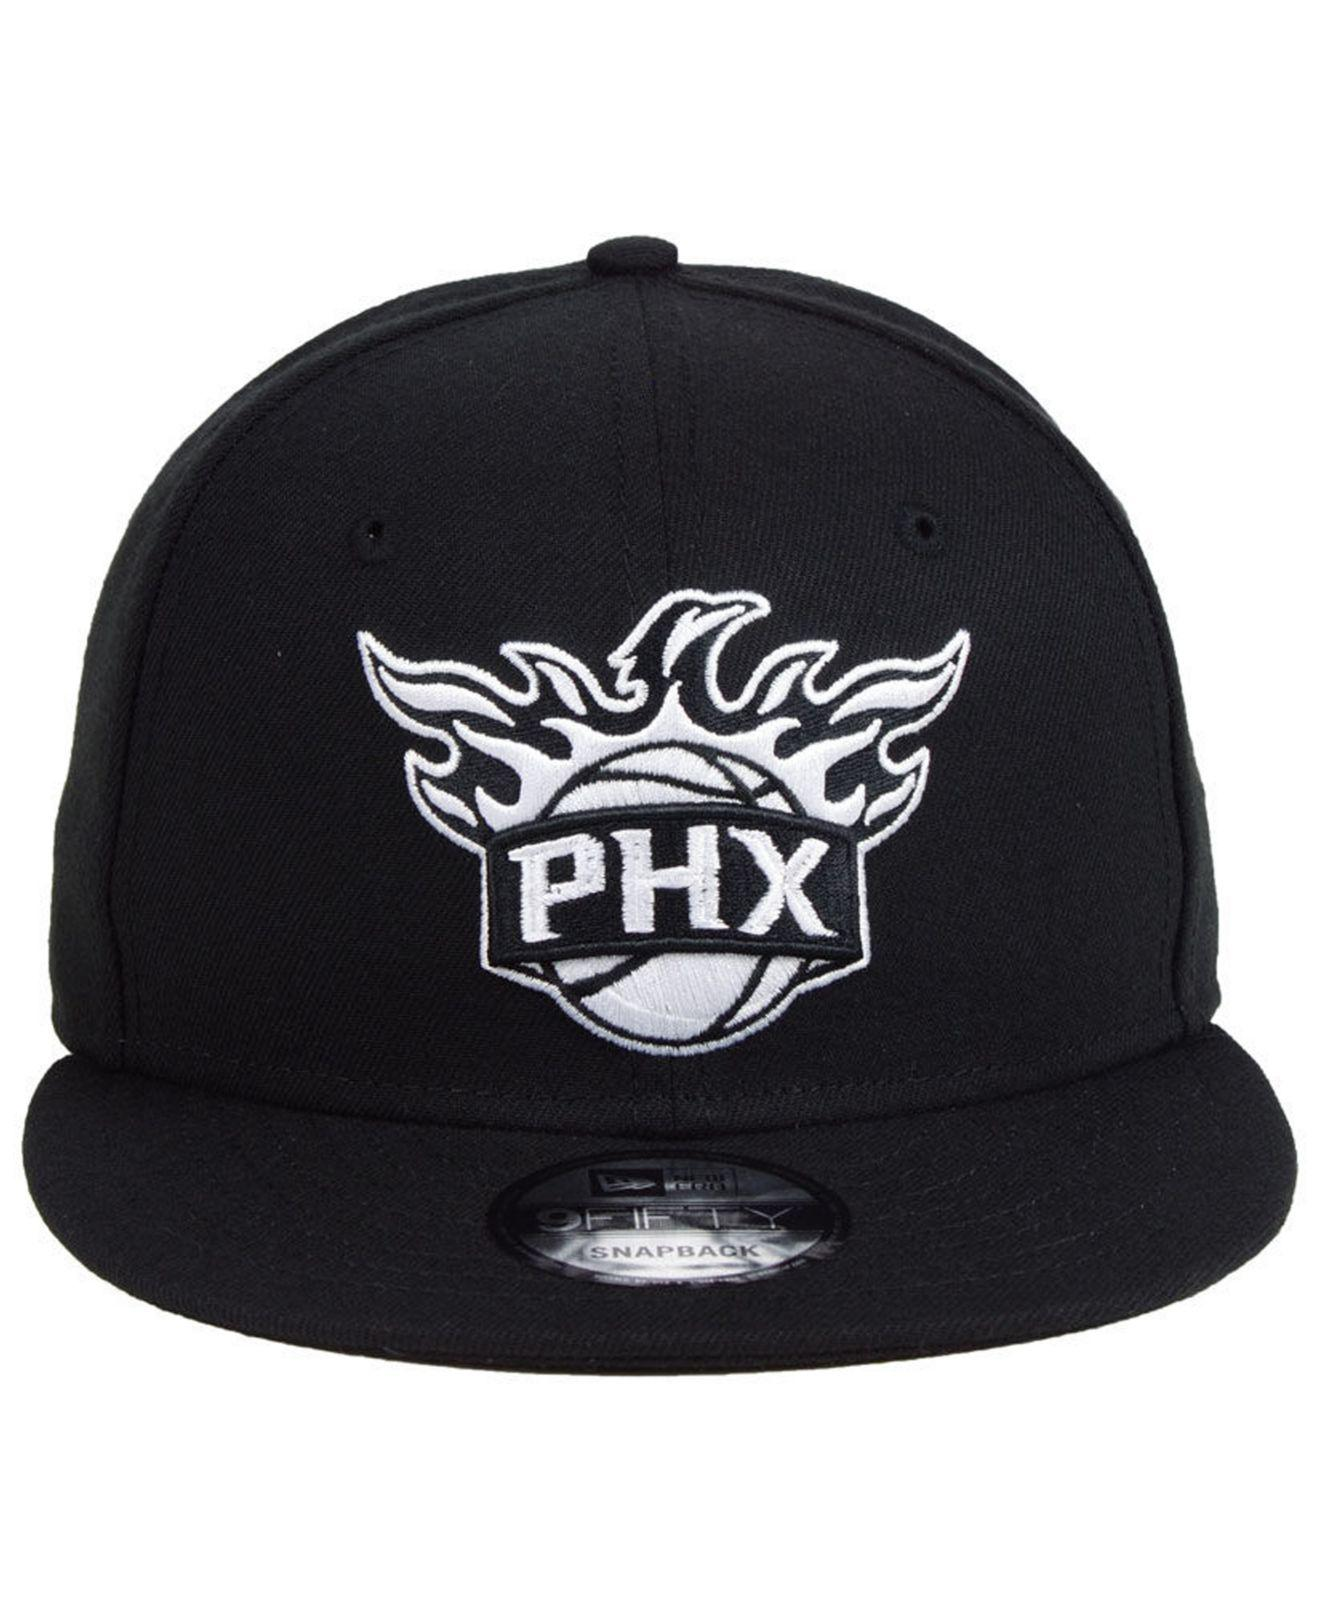 sports shoes 963a8 0b3b0 ... czech lyst ktz phoenix suns black white 9fifty snapback cap in black  for men 830bb 3985e